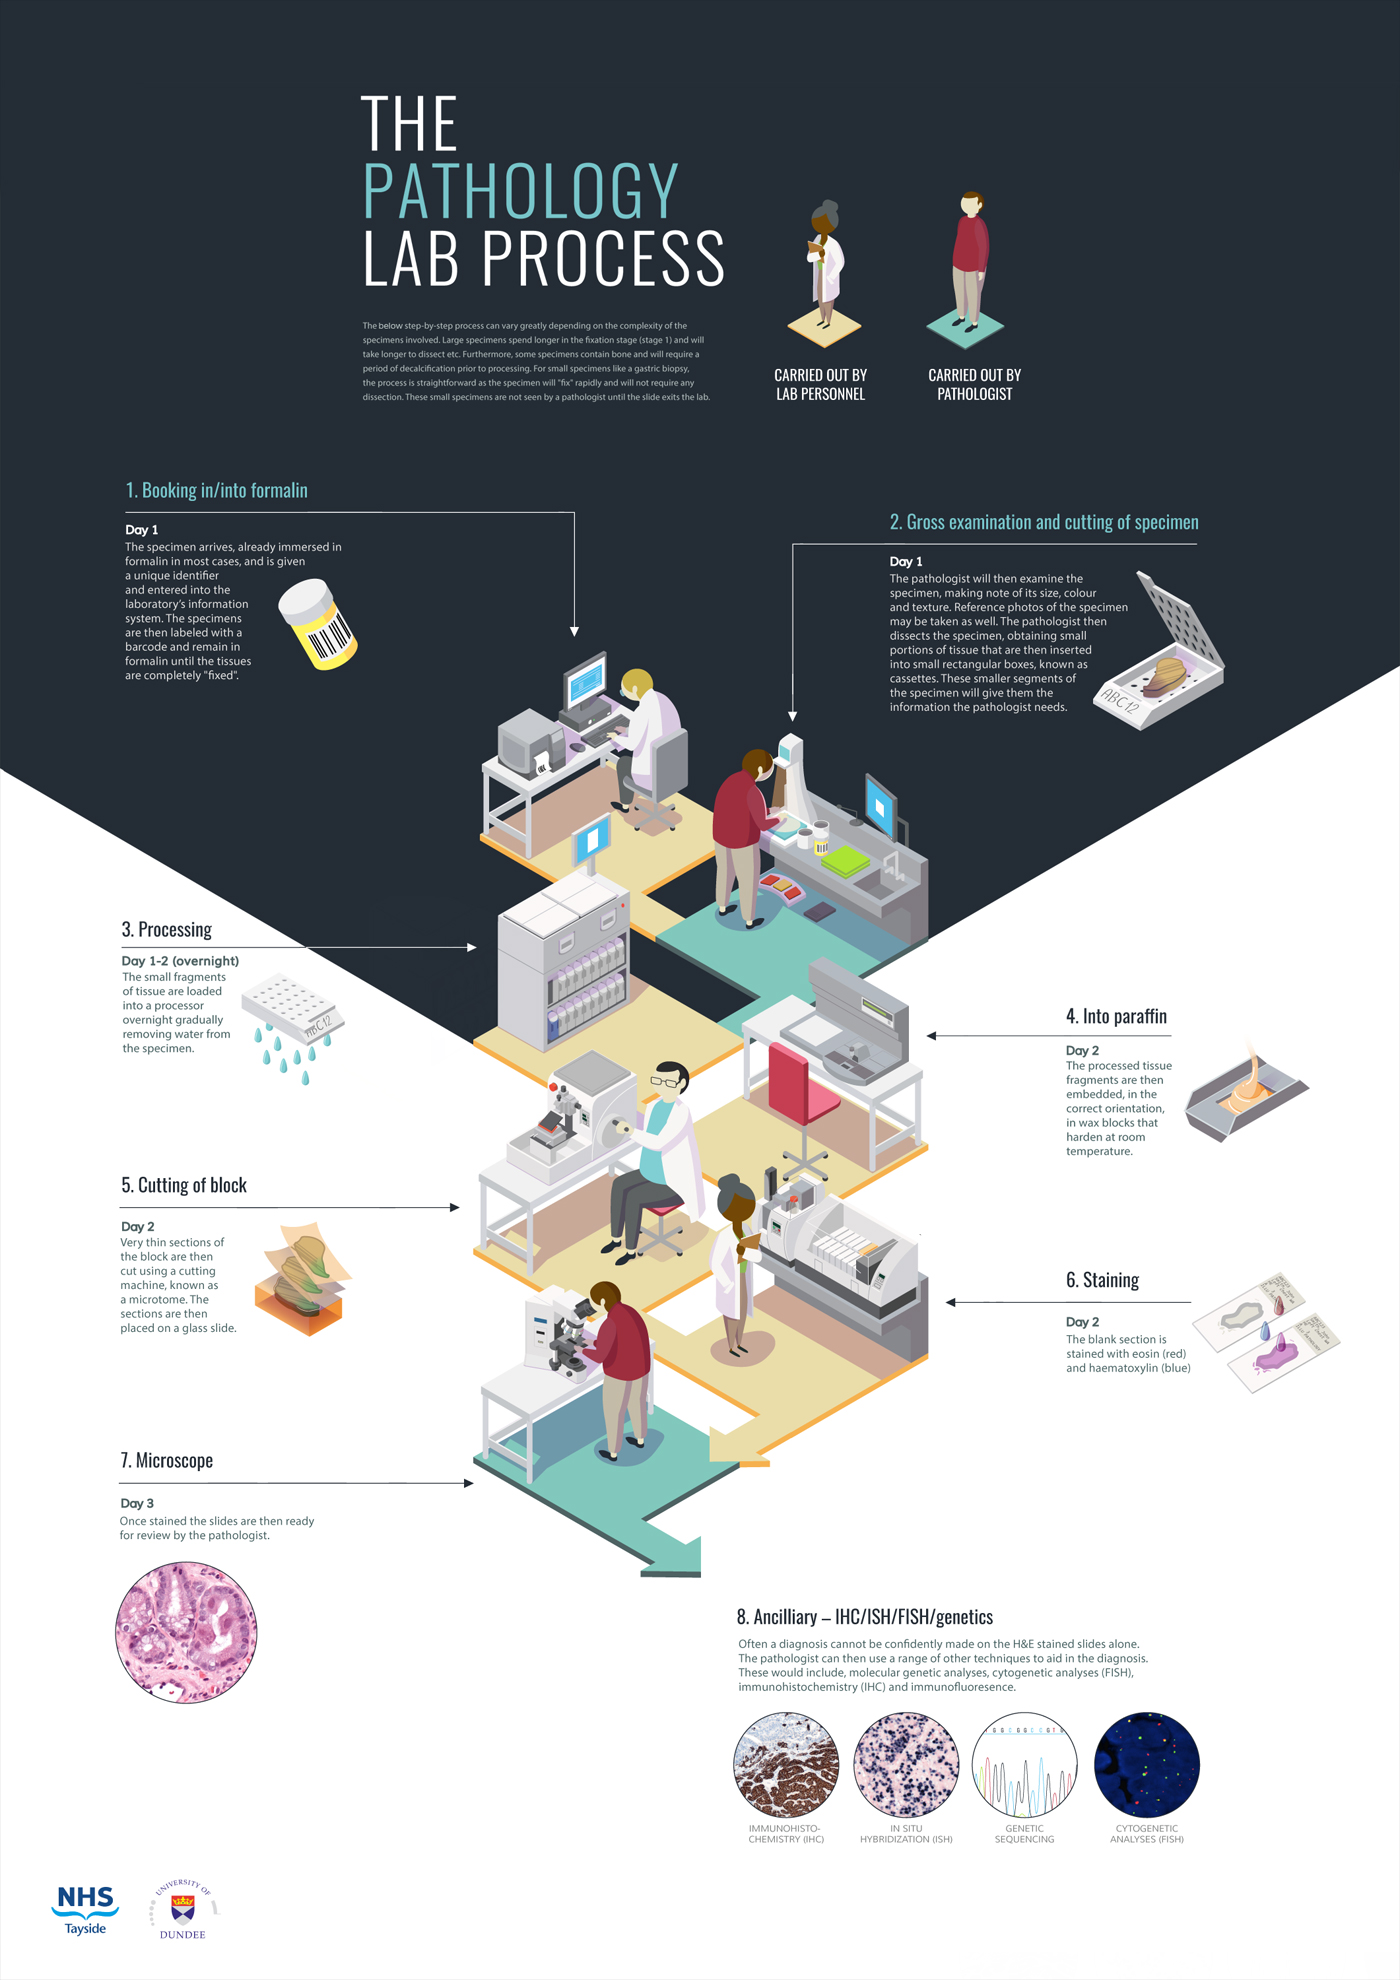 Annie_Campbell_Infographic_Poster_Pathology_Lab_Process.jpg